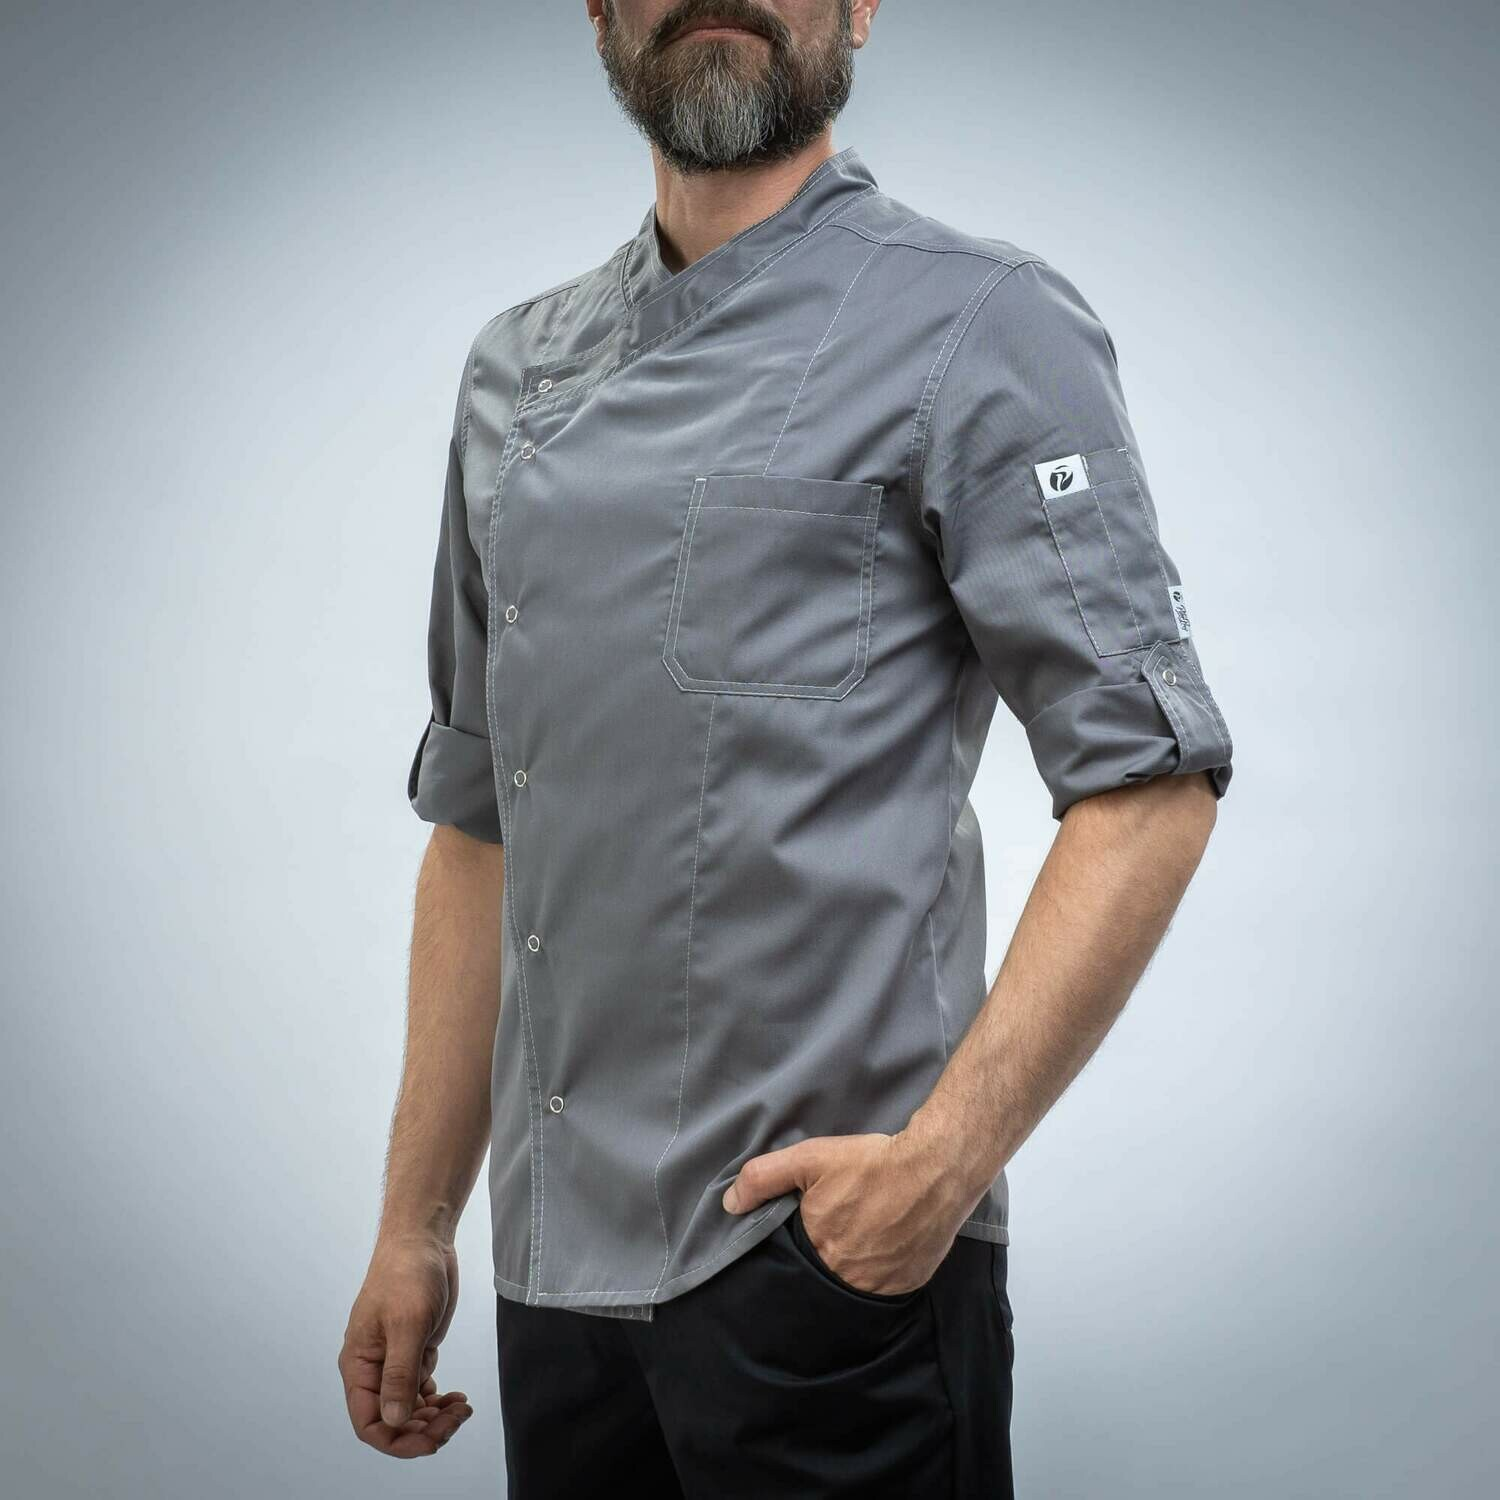 147GNR2 - CHEF'S JACKET